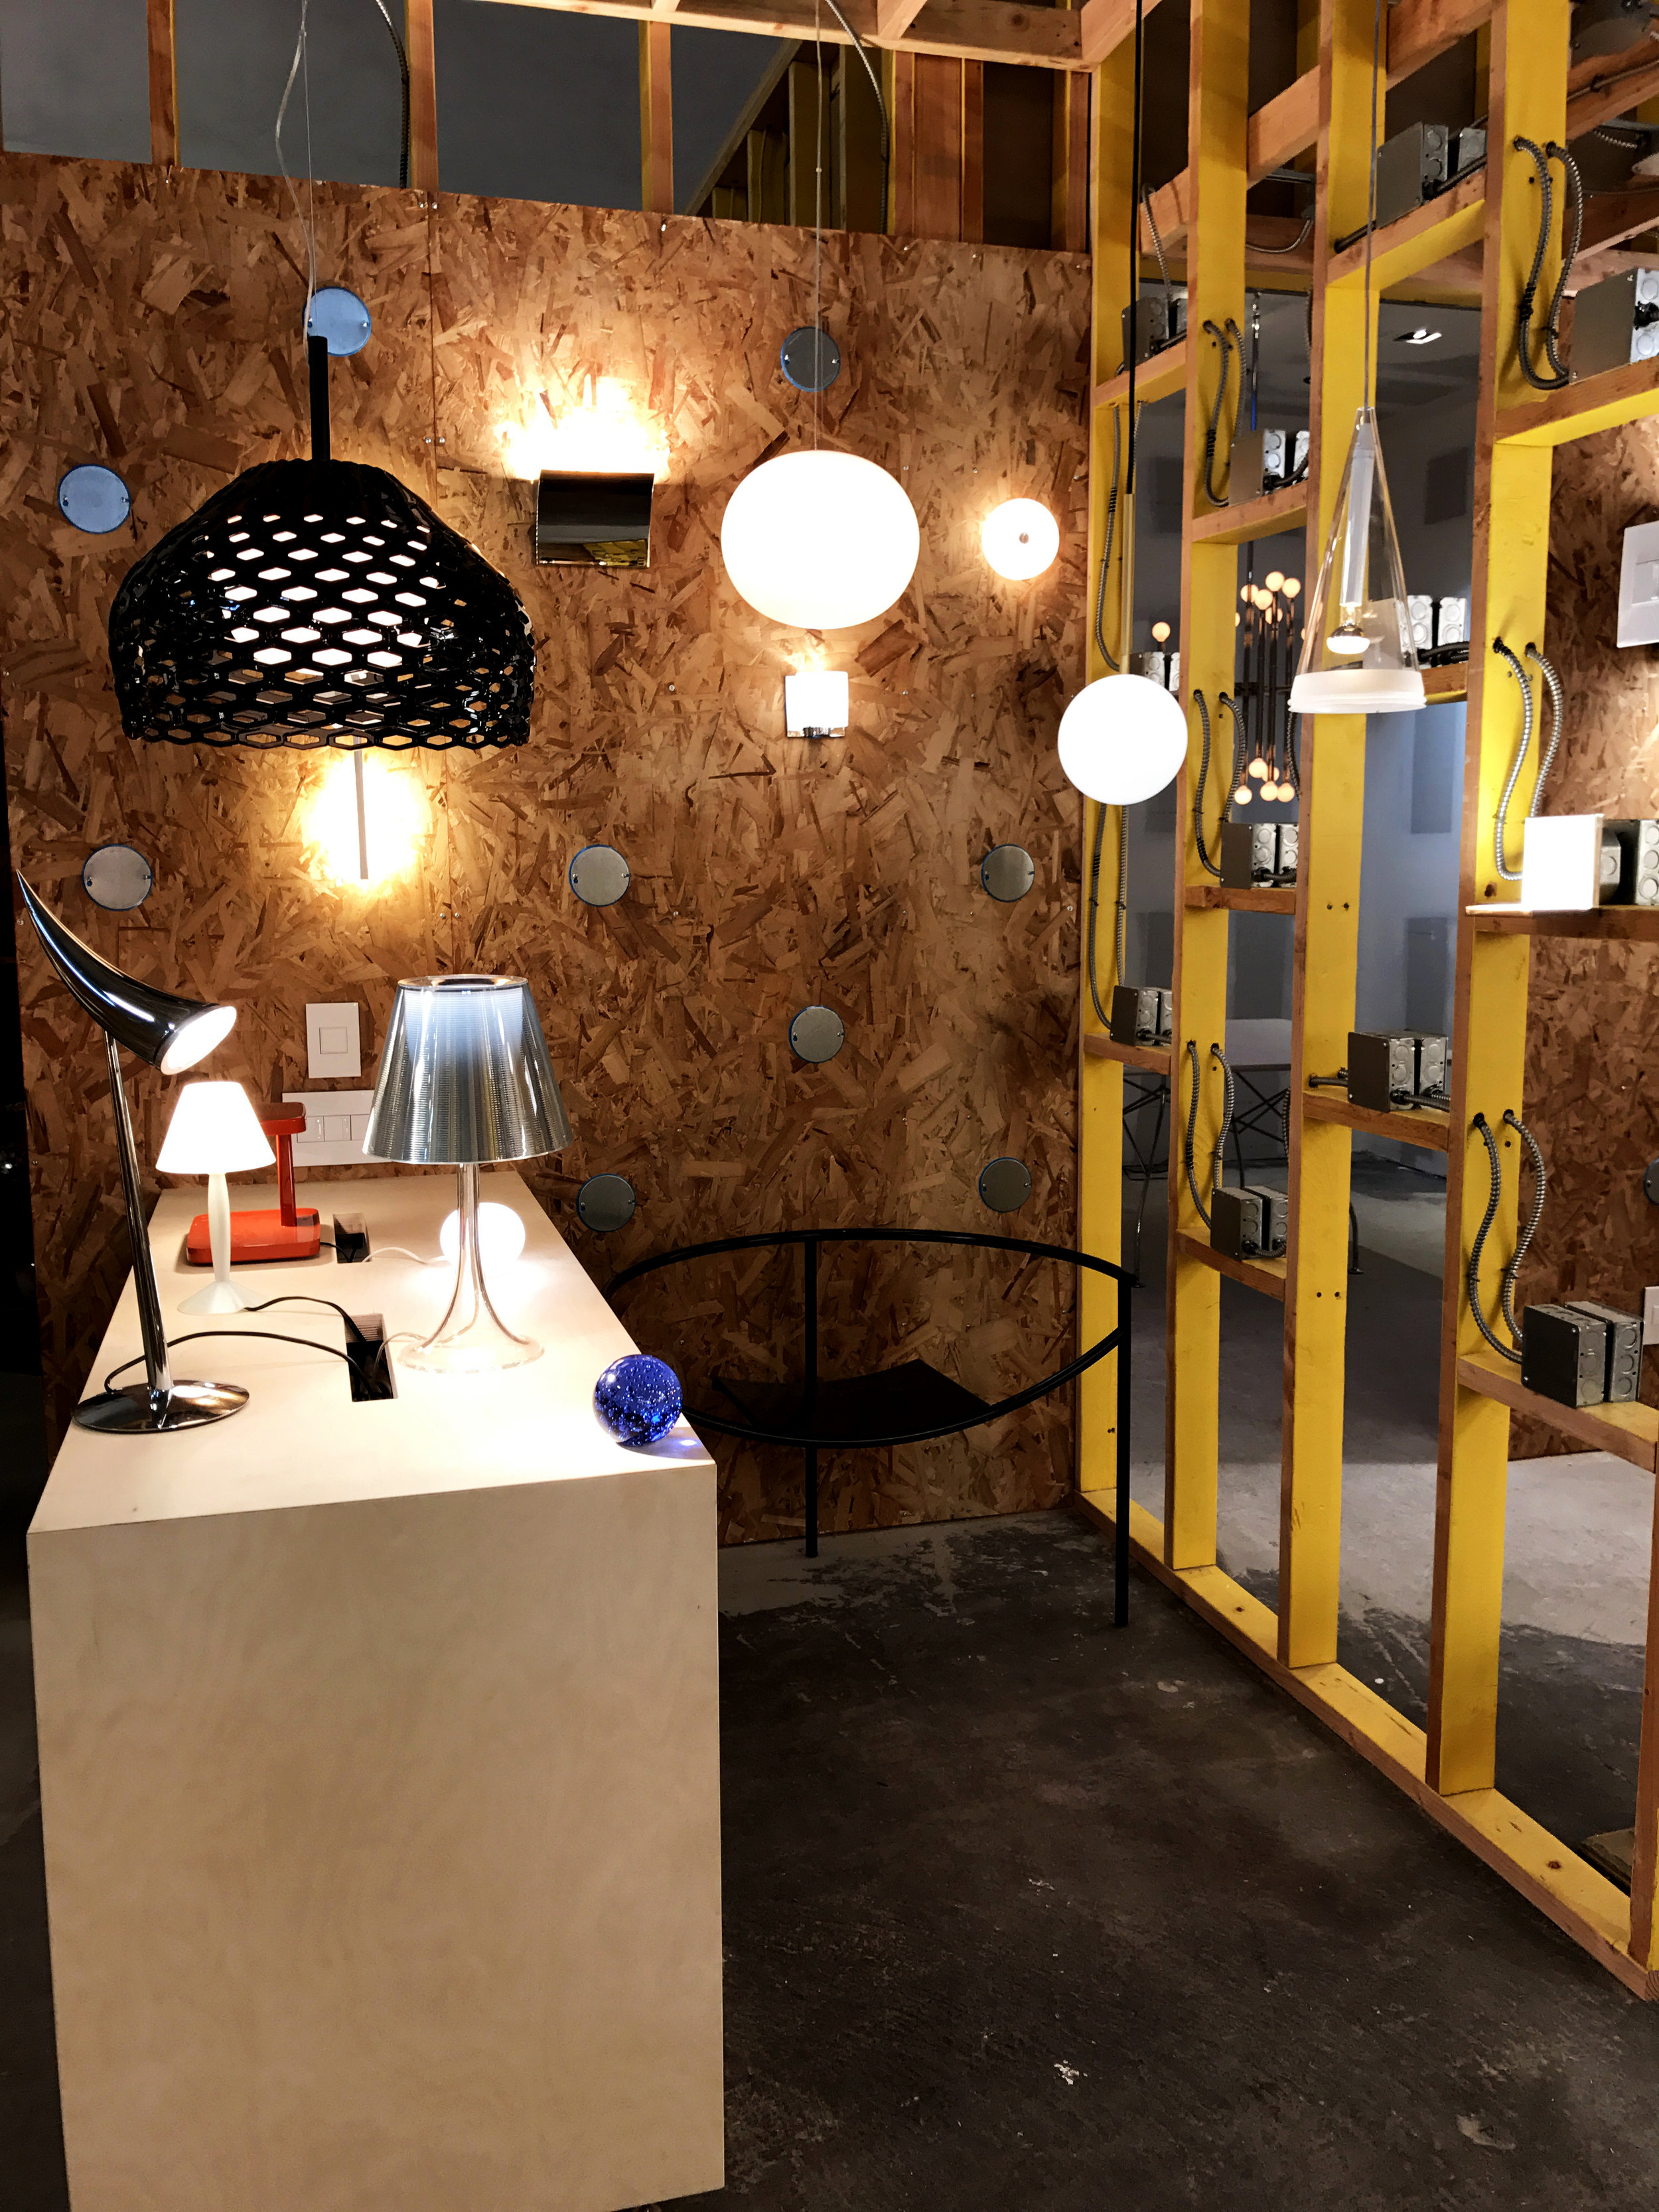 This display features fixtures by Flos from Italy and a vintage Dr. Sonderbar Chair by Philippe Starck (Our Price $1,750 compared to 1stDibs.com $3,211). One of the sconces and three of the table lamps are also designed by Philippe Starck.